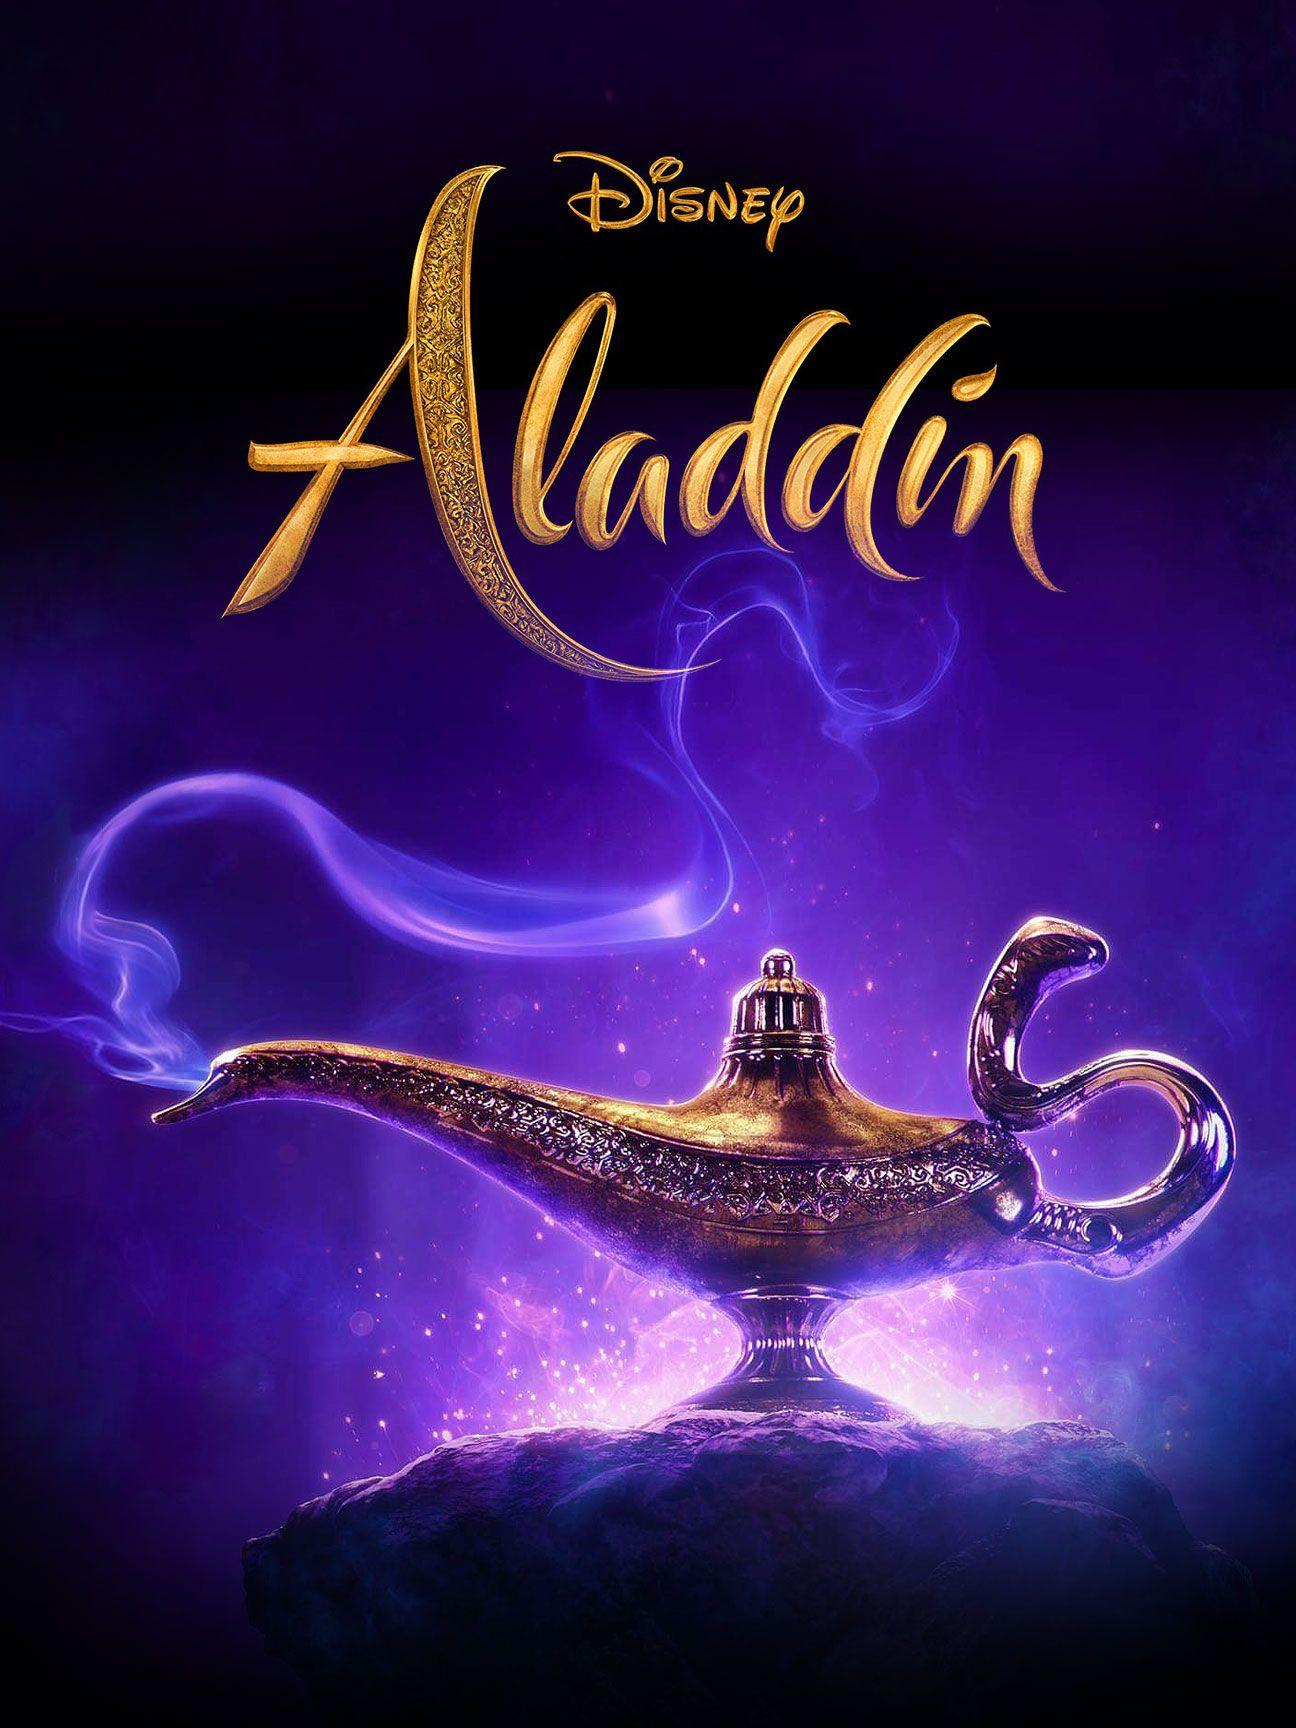 Aladdin Movie Wallpapers - Wallpaper Cave